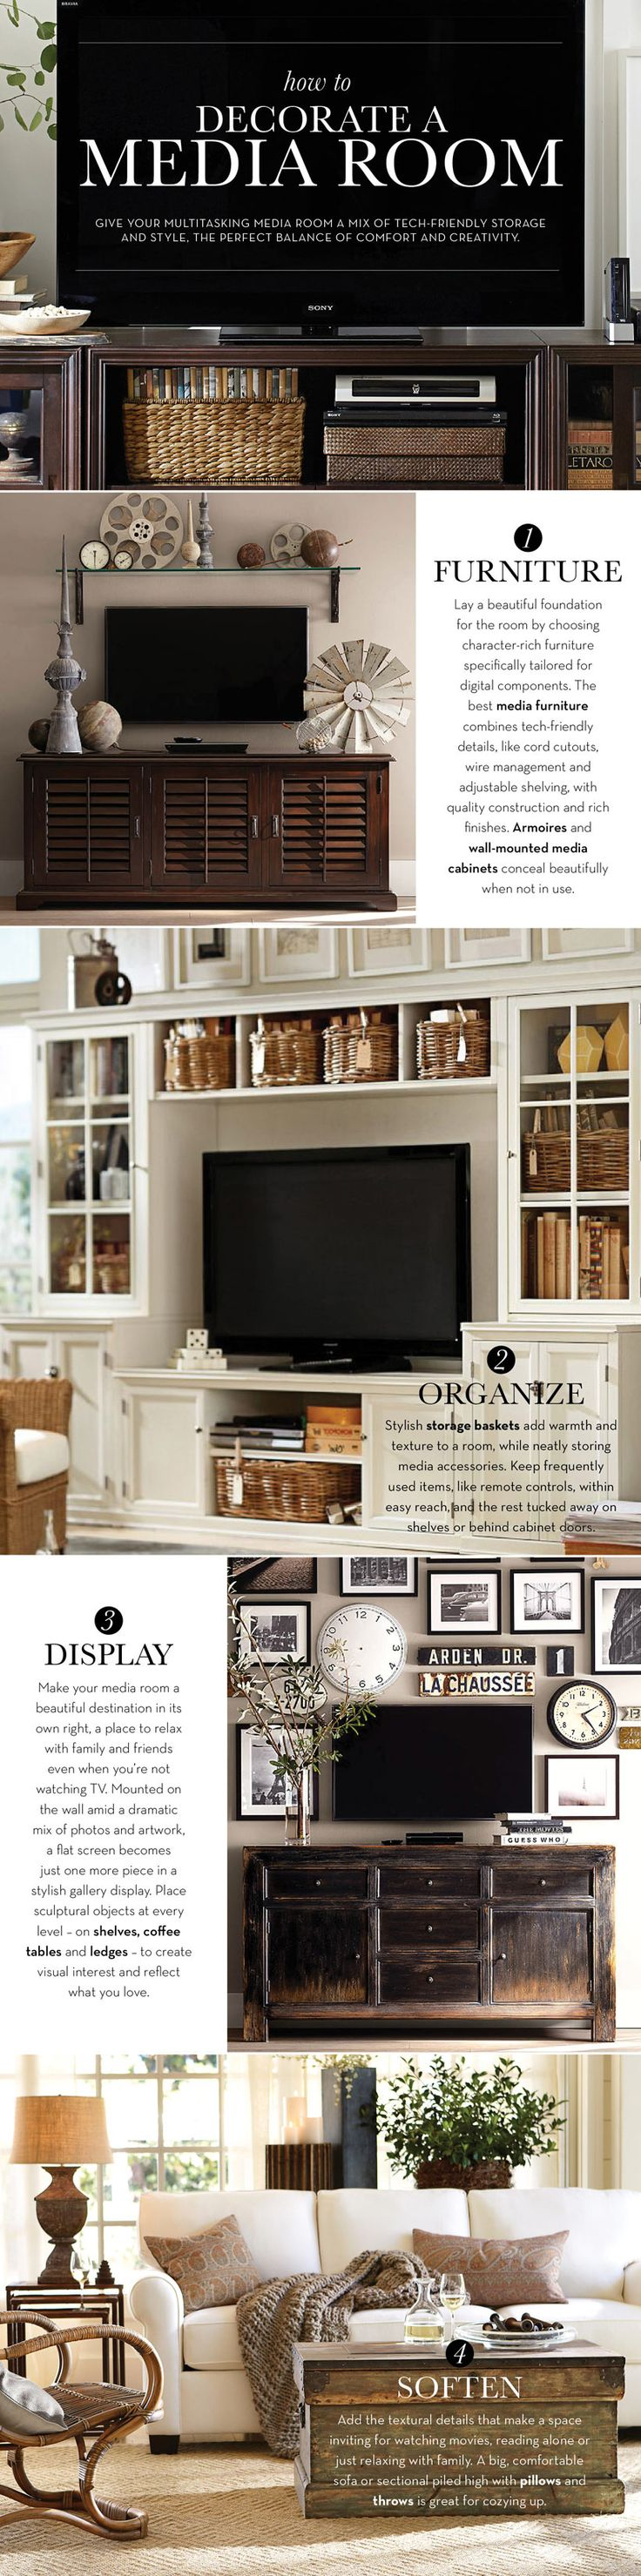 Make a room multifunctional and not just for tv. How to decorate a media room from Pottery Barn!